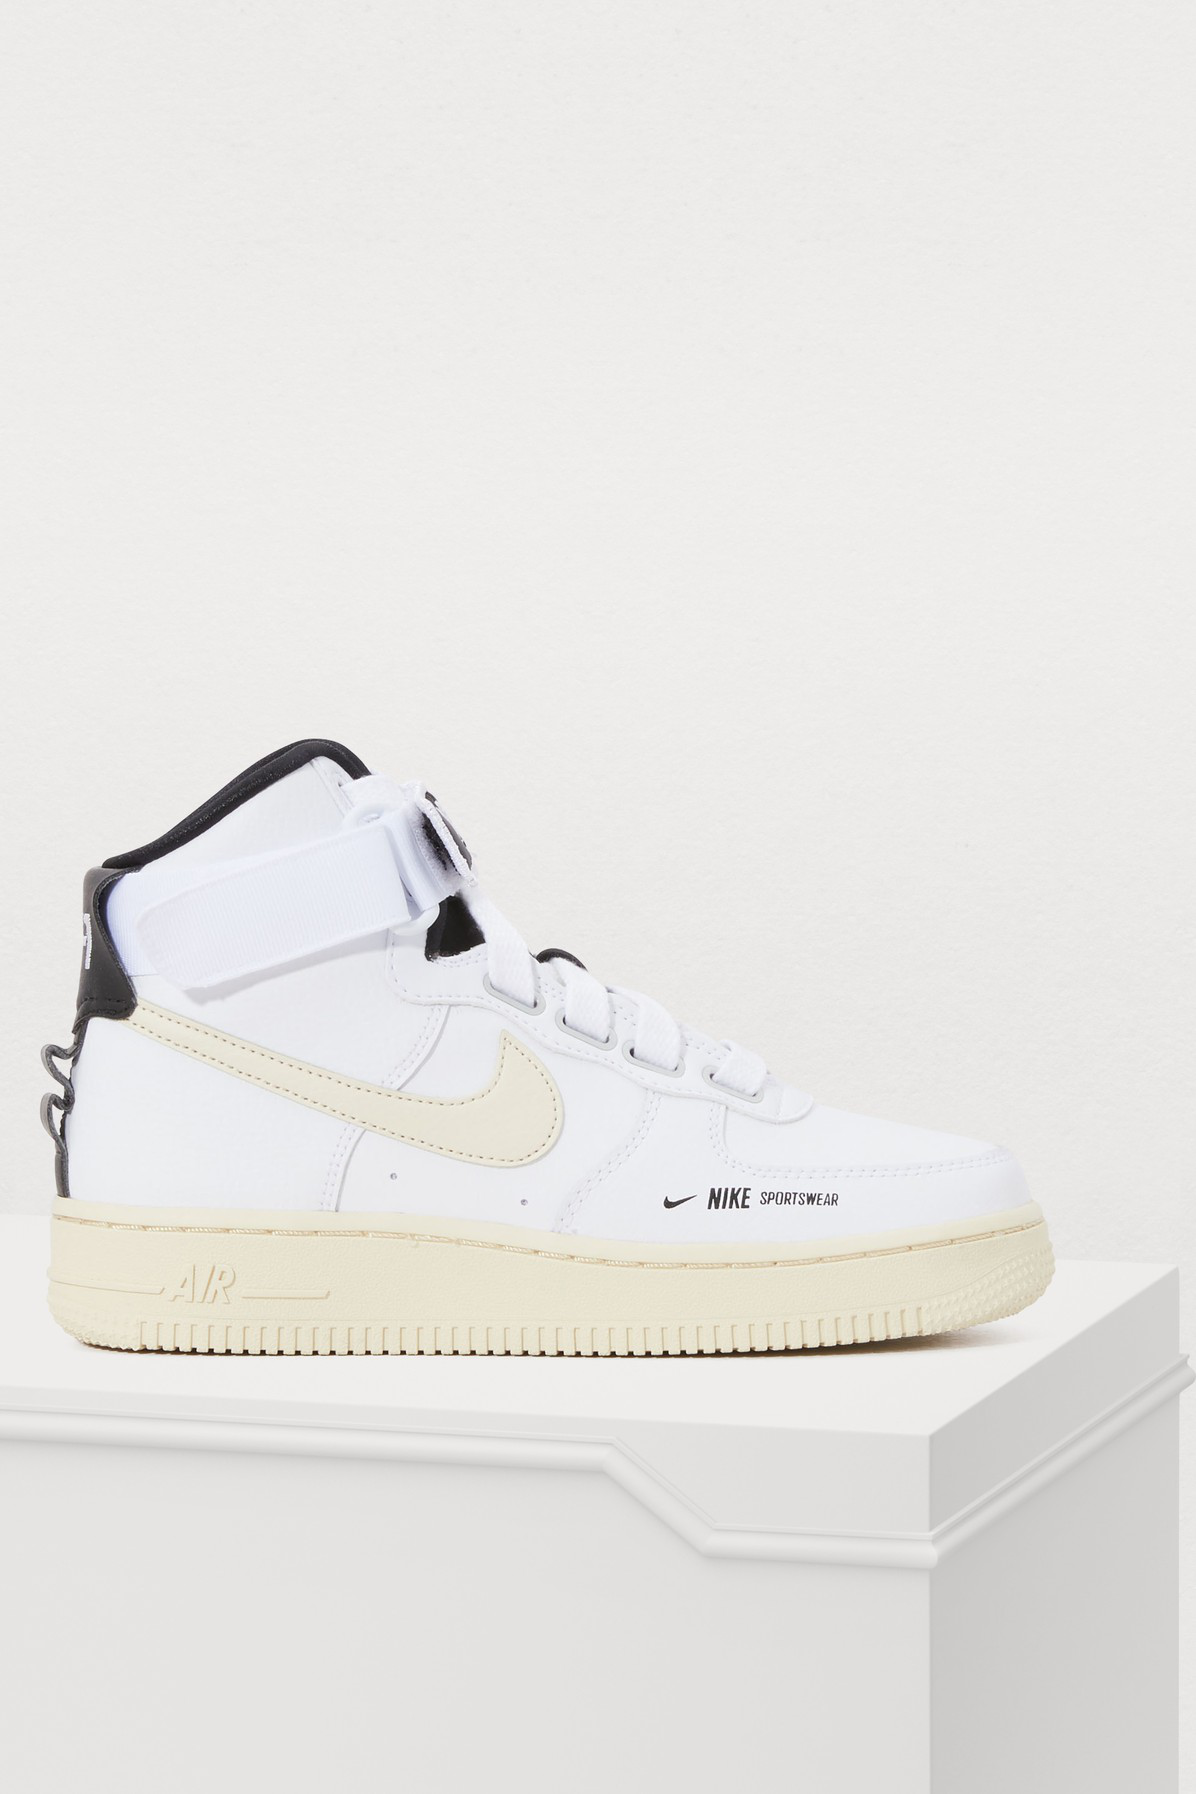 6fa65dc344f8 Nike Women s Air Force 1 High Utility Casual Shoes